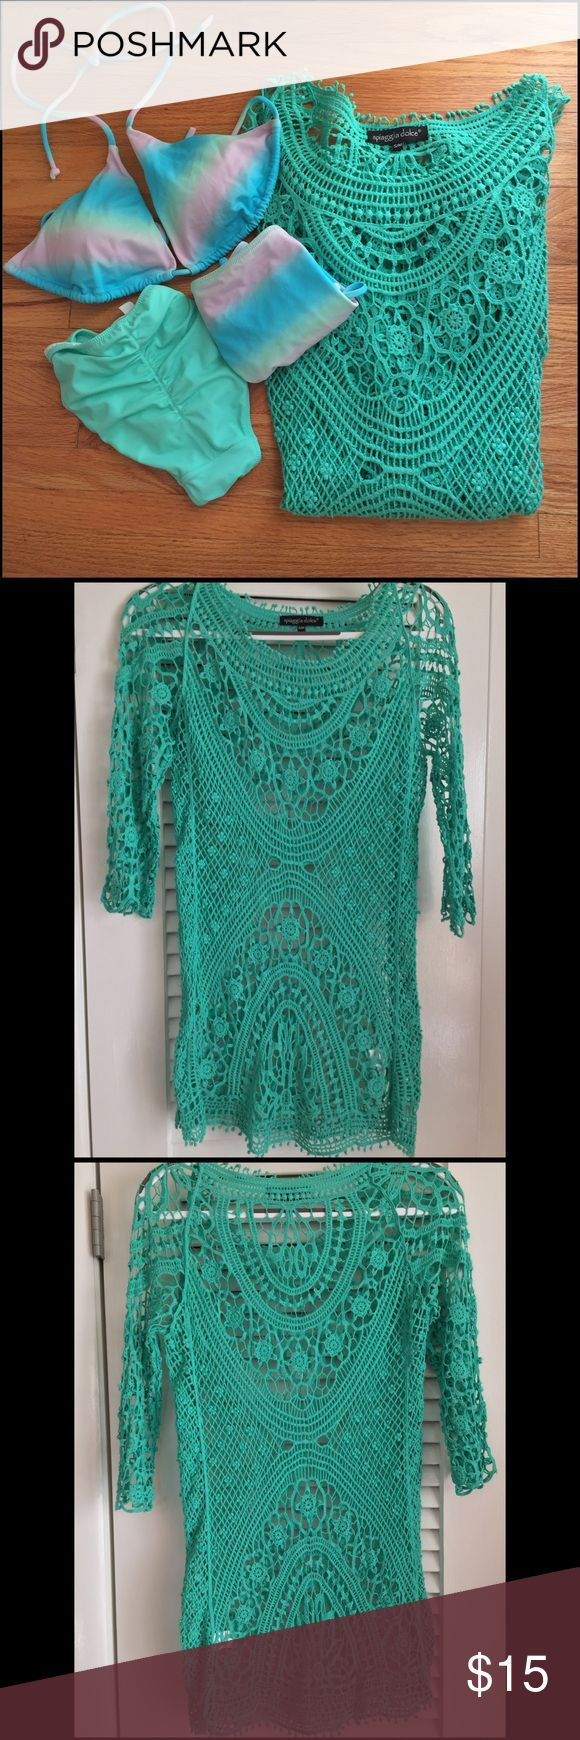 Crochet Swimsuit Coverup NWOT perfect to wear over your fav swimsuit or add a tank to wear with crops! 100% Cotton. spiaggia dolce Swim Coverups